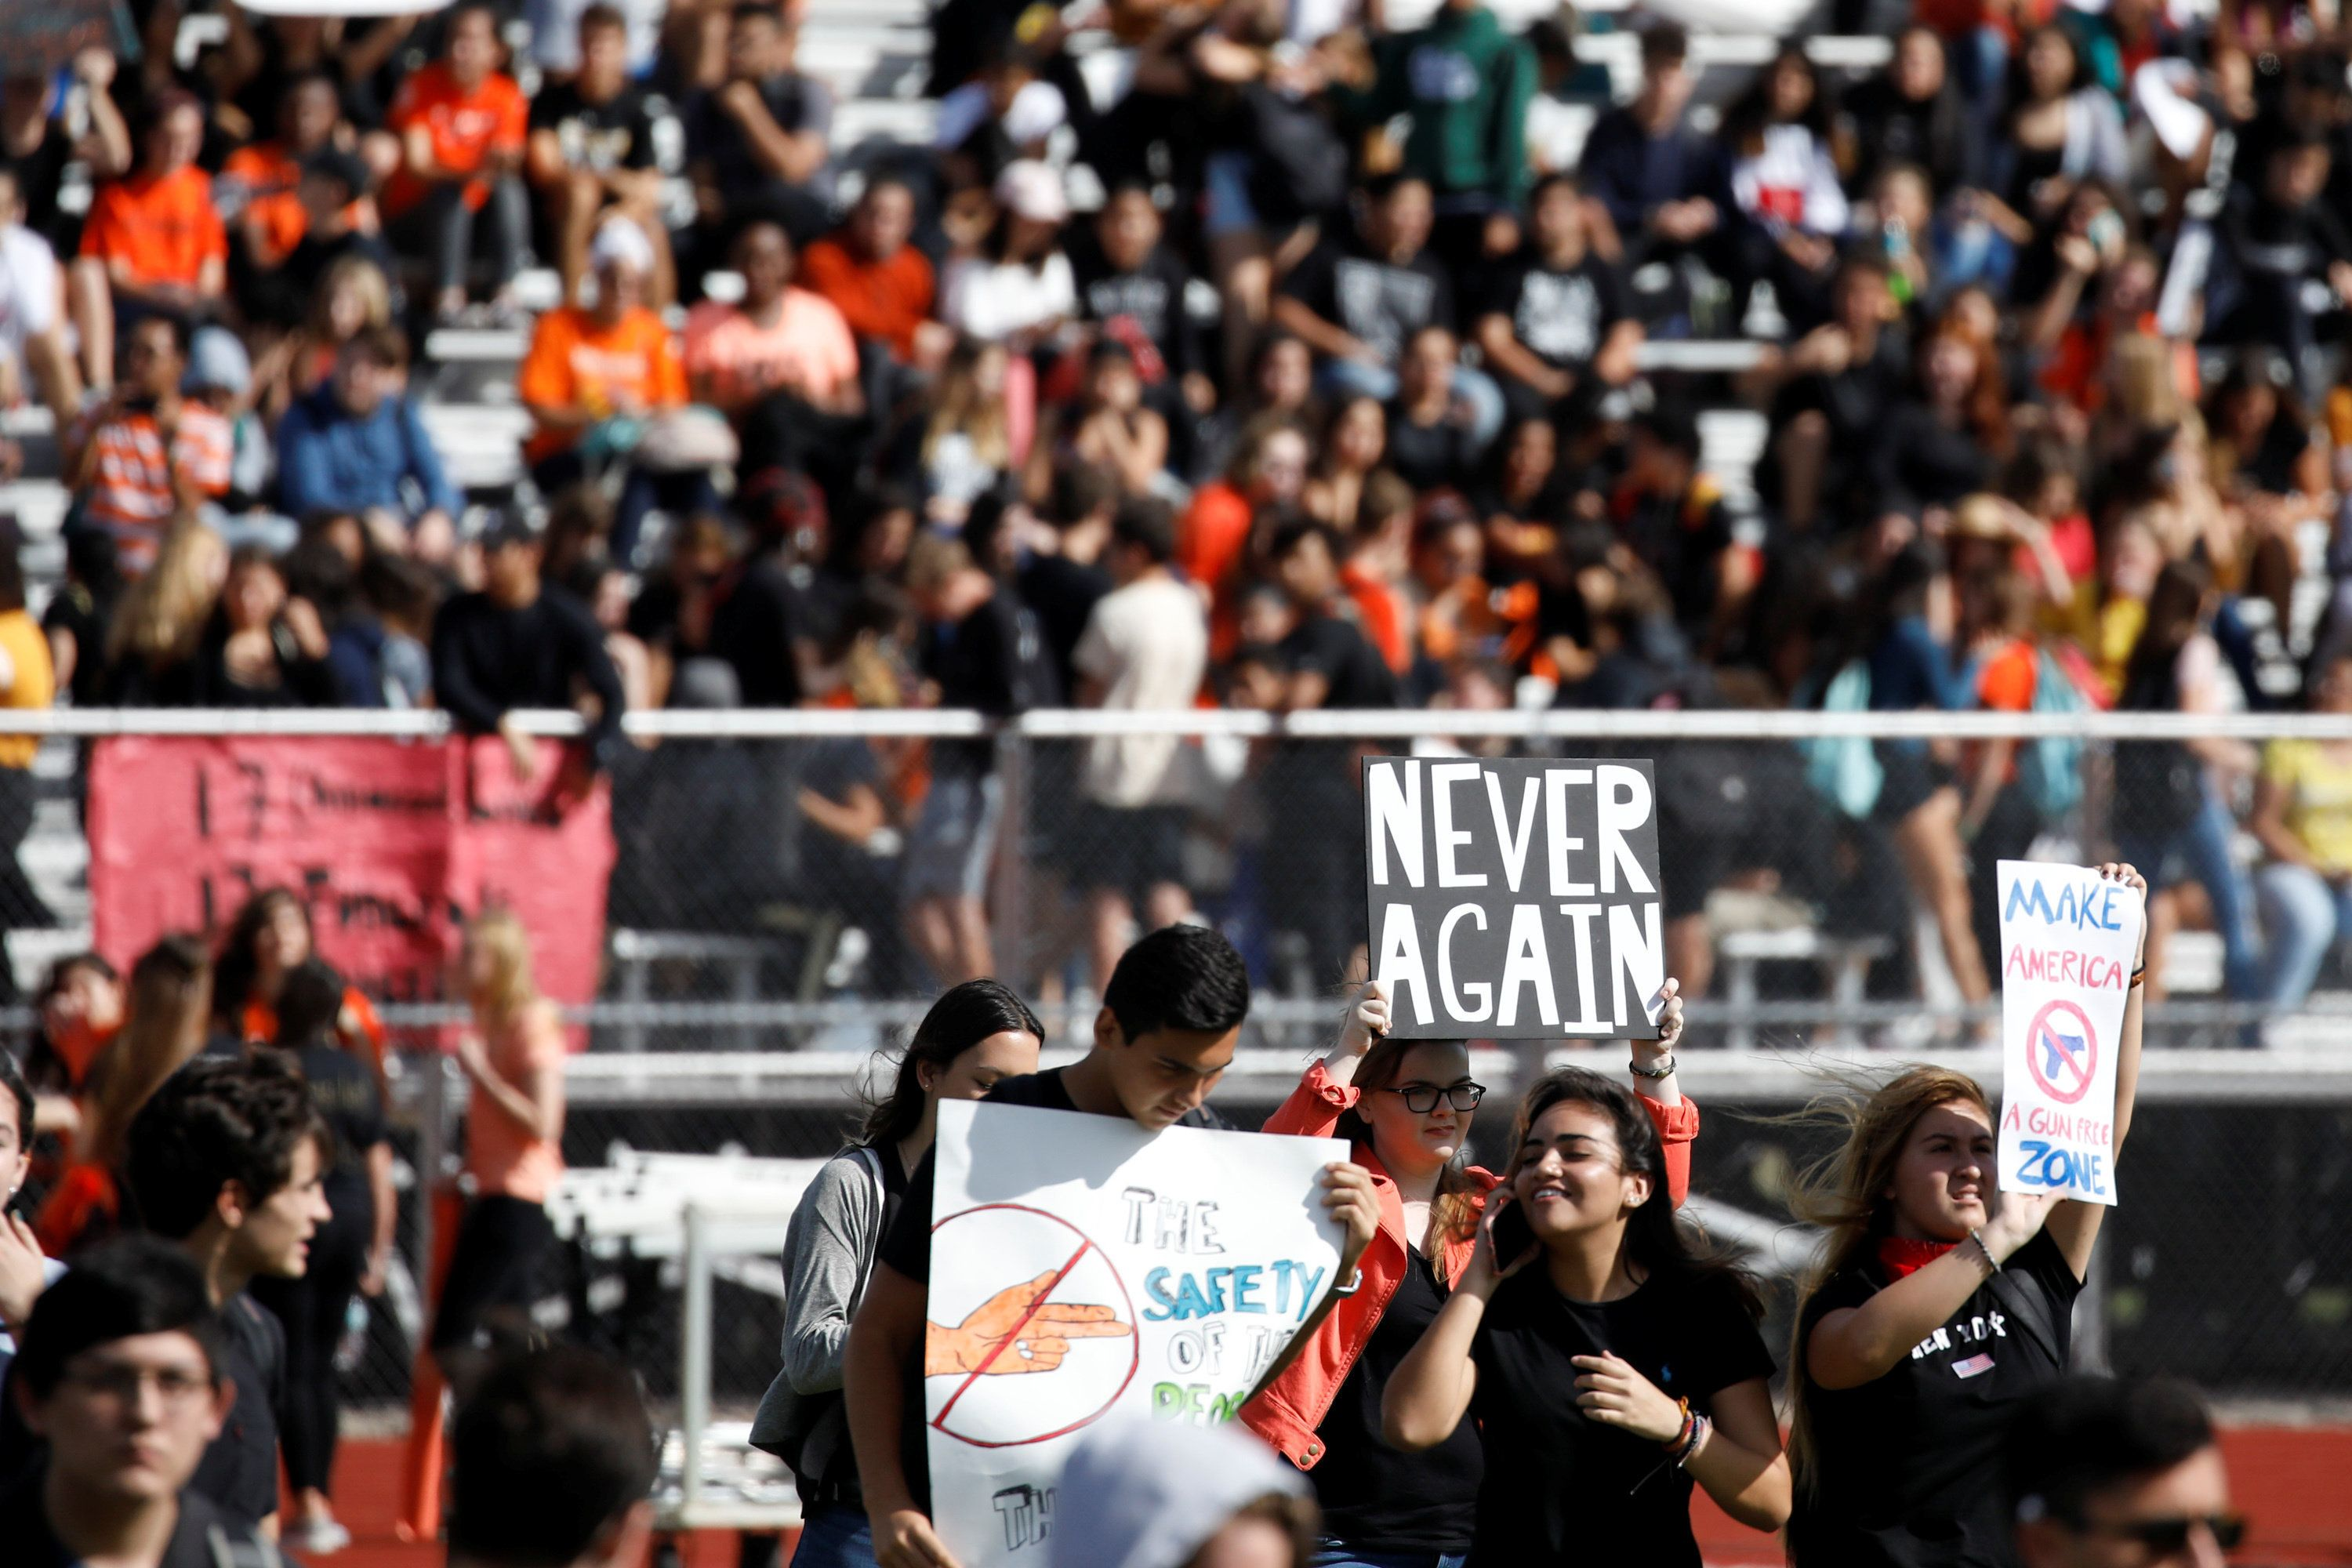 Students from Western High School carrying placards, take part in a protest in support of the gun control, following a mass shooting at Marjory Stoneman Douglas High School, in Davie, Florida, U.S, February 21, 2018. REUTERS/Carlos Garcia Rawlins